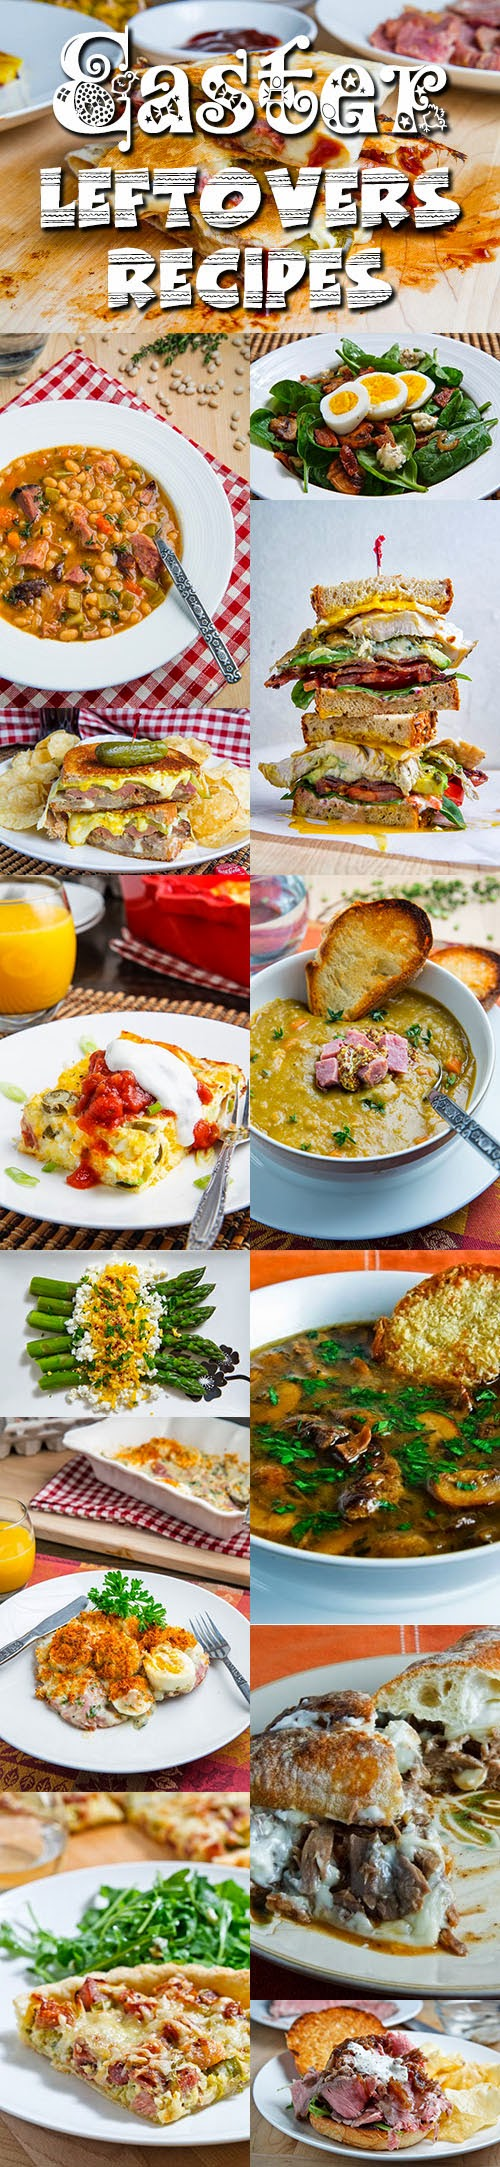 Easter Leftovers Recipes